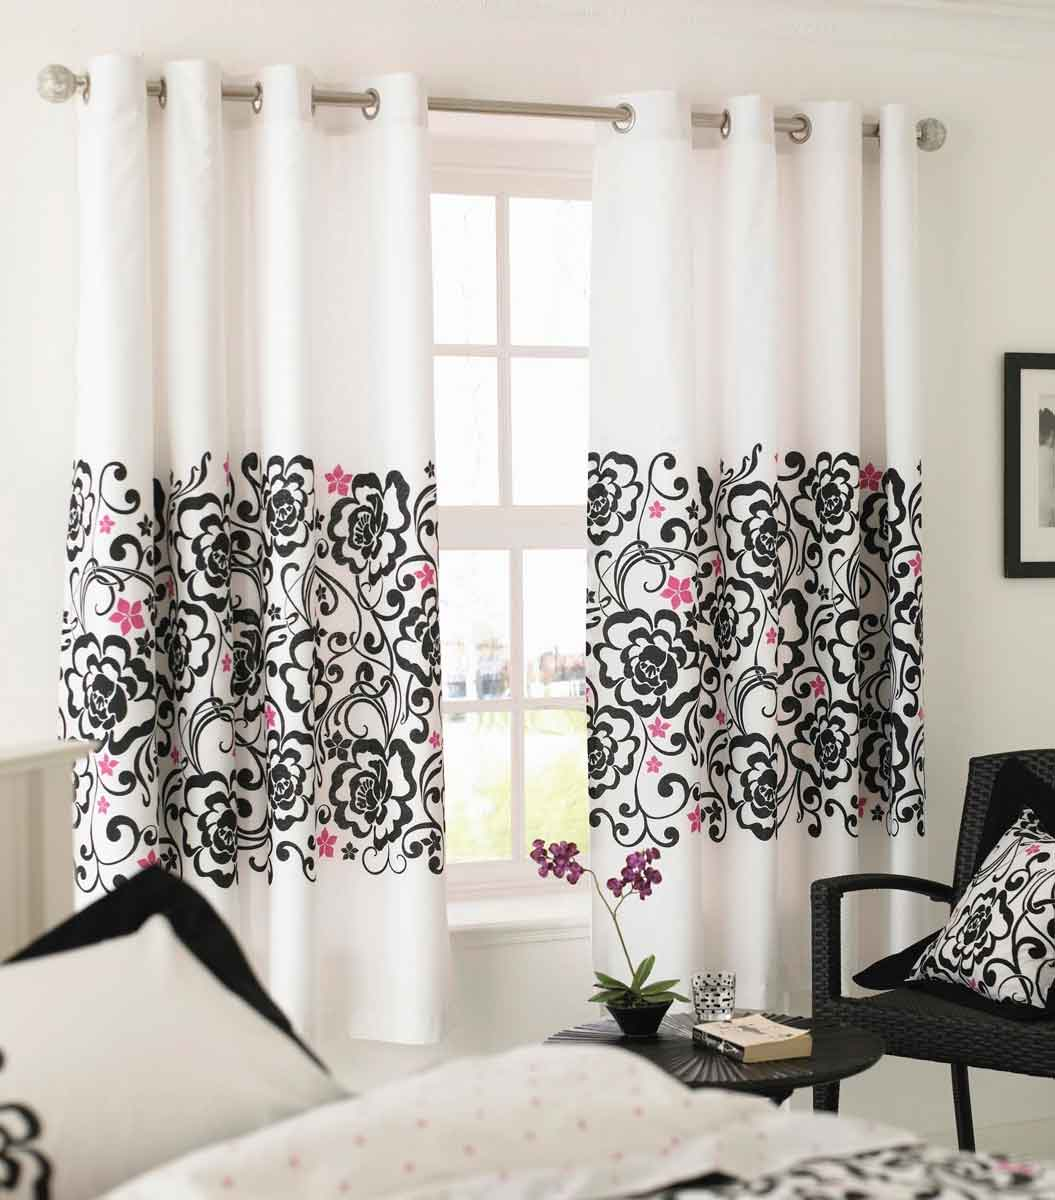 White black and pink decor apartments i like blog for Black and white curtain designs